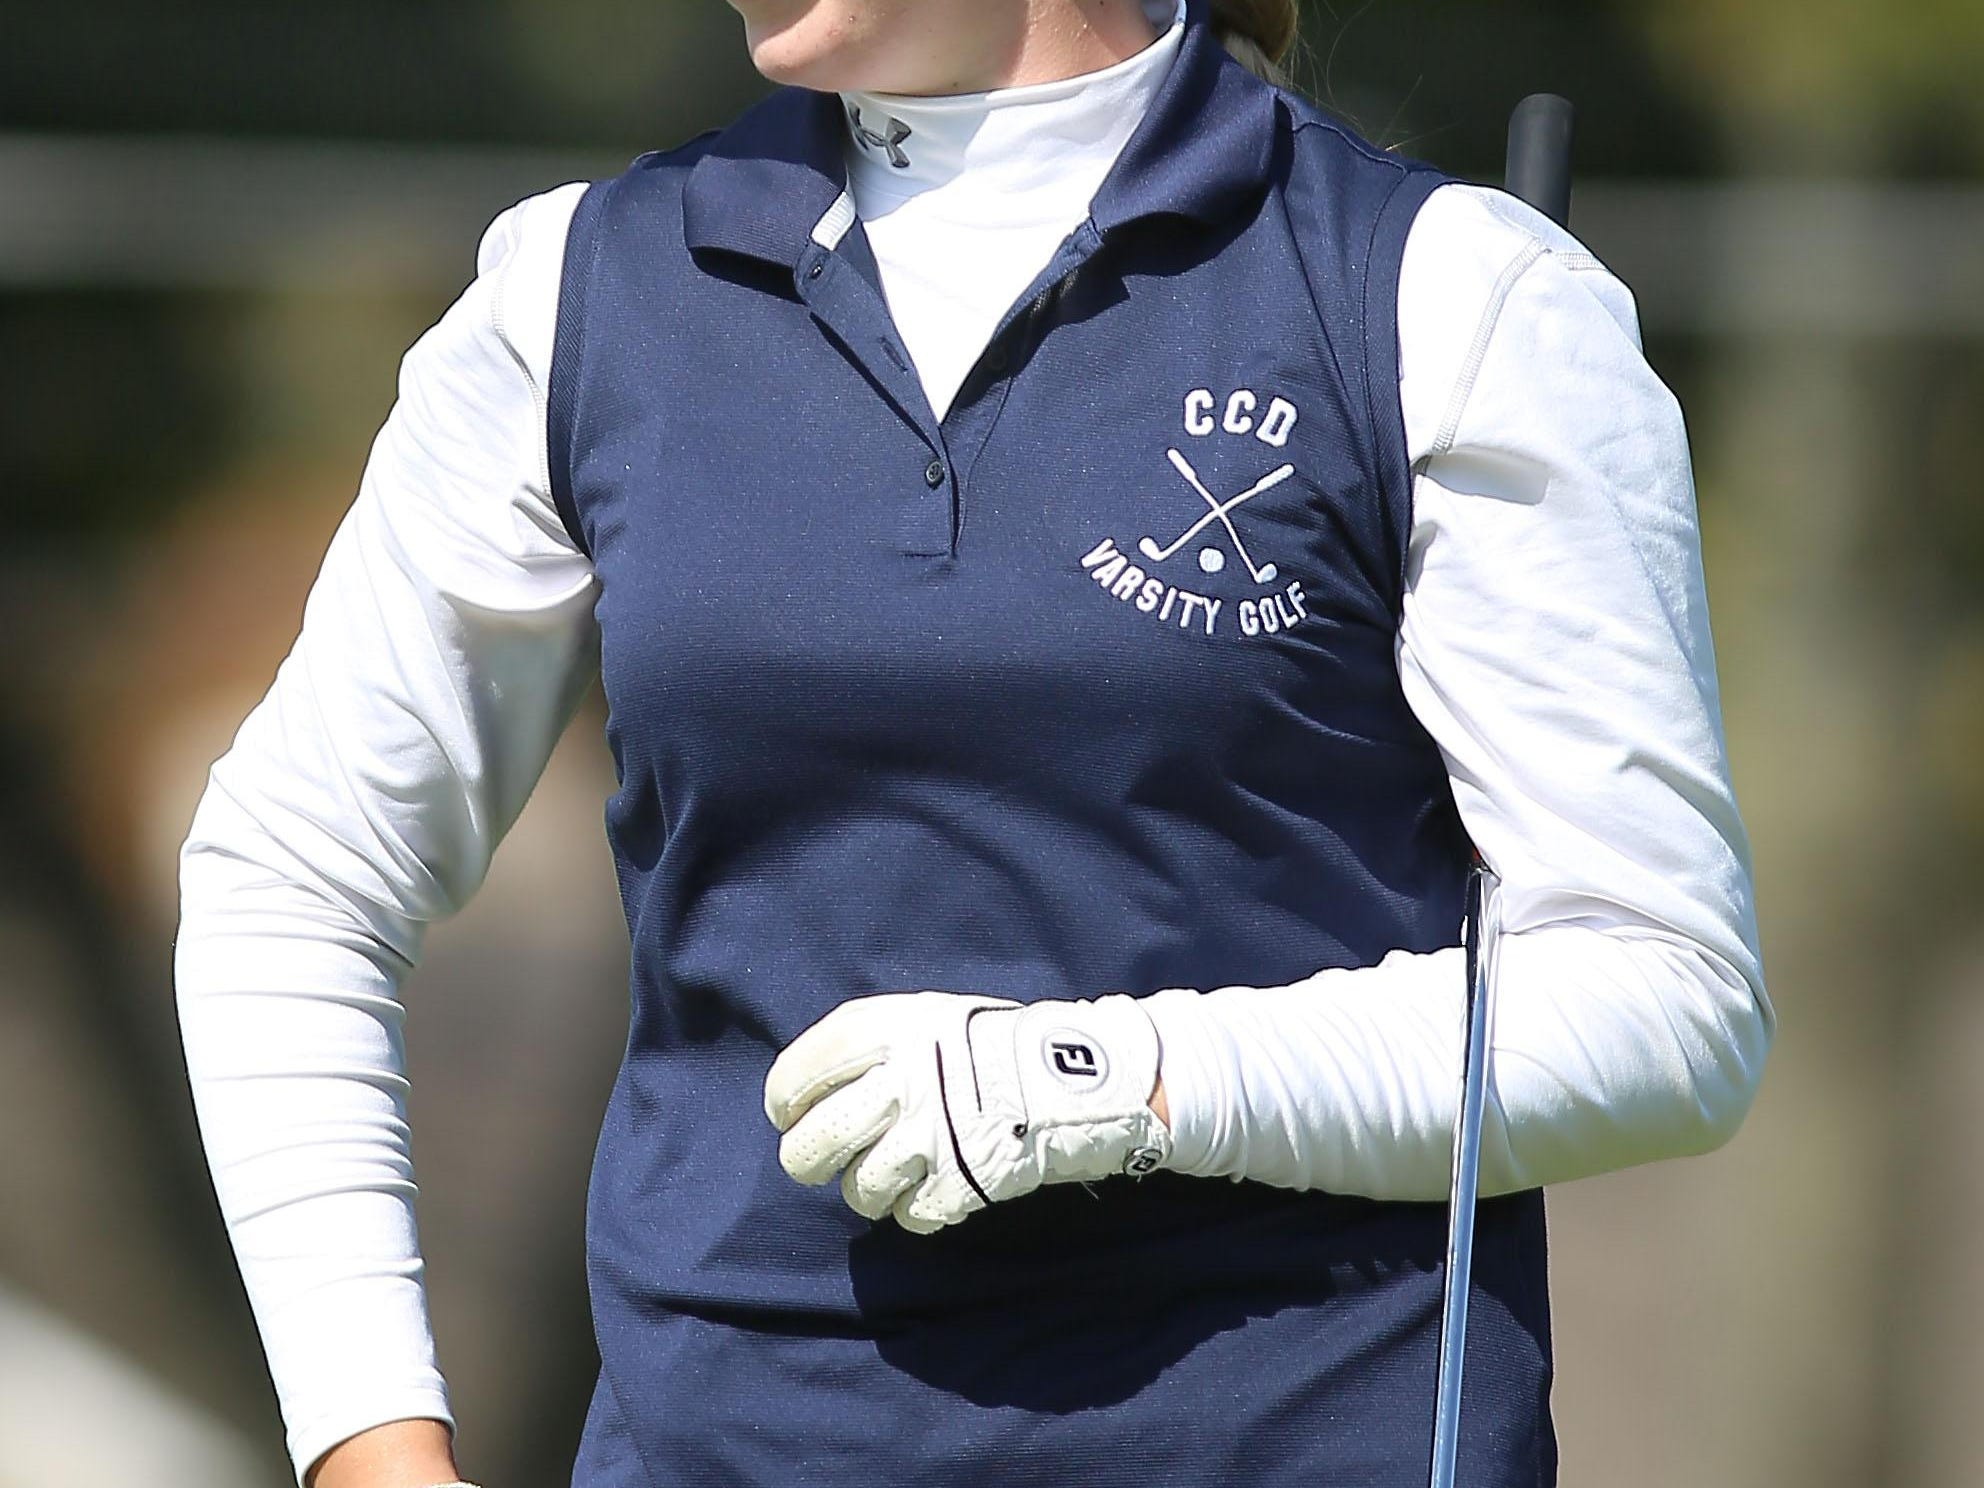 Cincinnati Country Day grad Kacie Bradfish, shown in 2012, had a good showing at the Women's Met this past week.